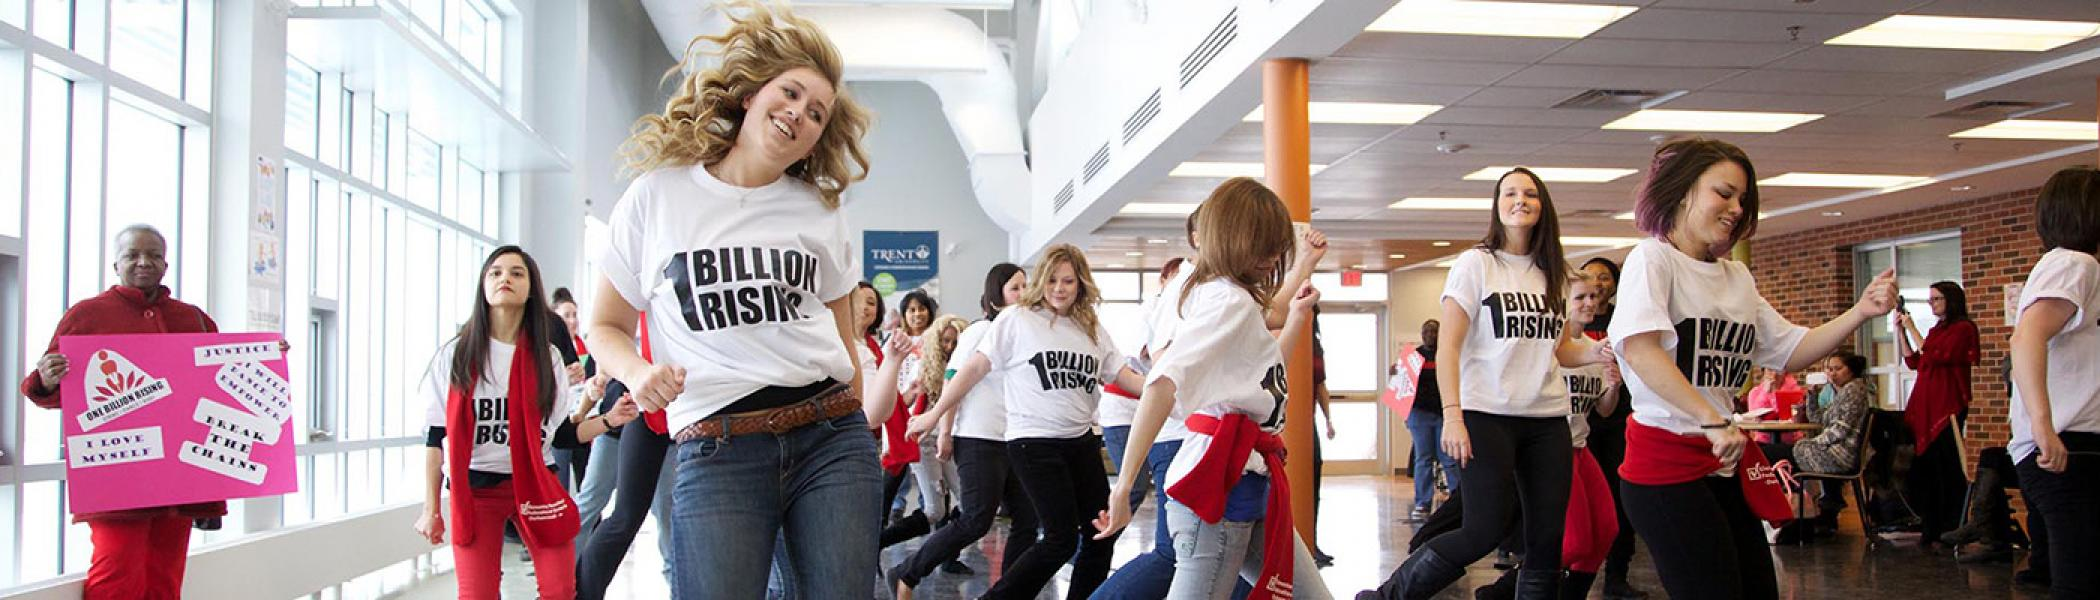 Trent University Durham students doing a flashmob in the Durham campus